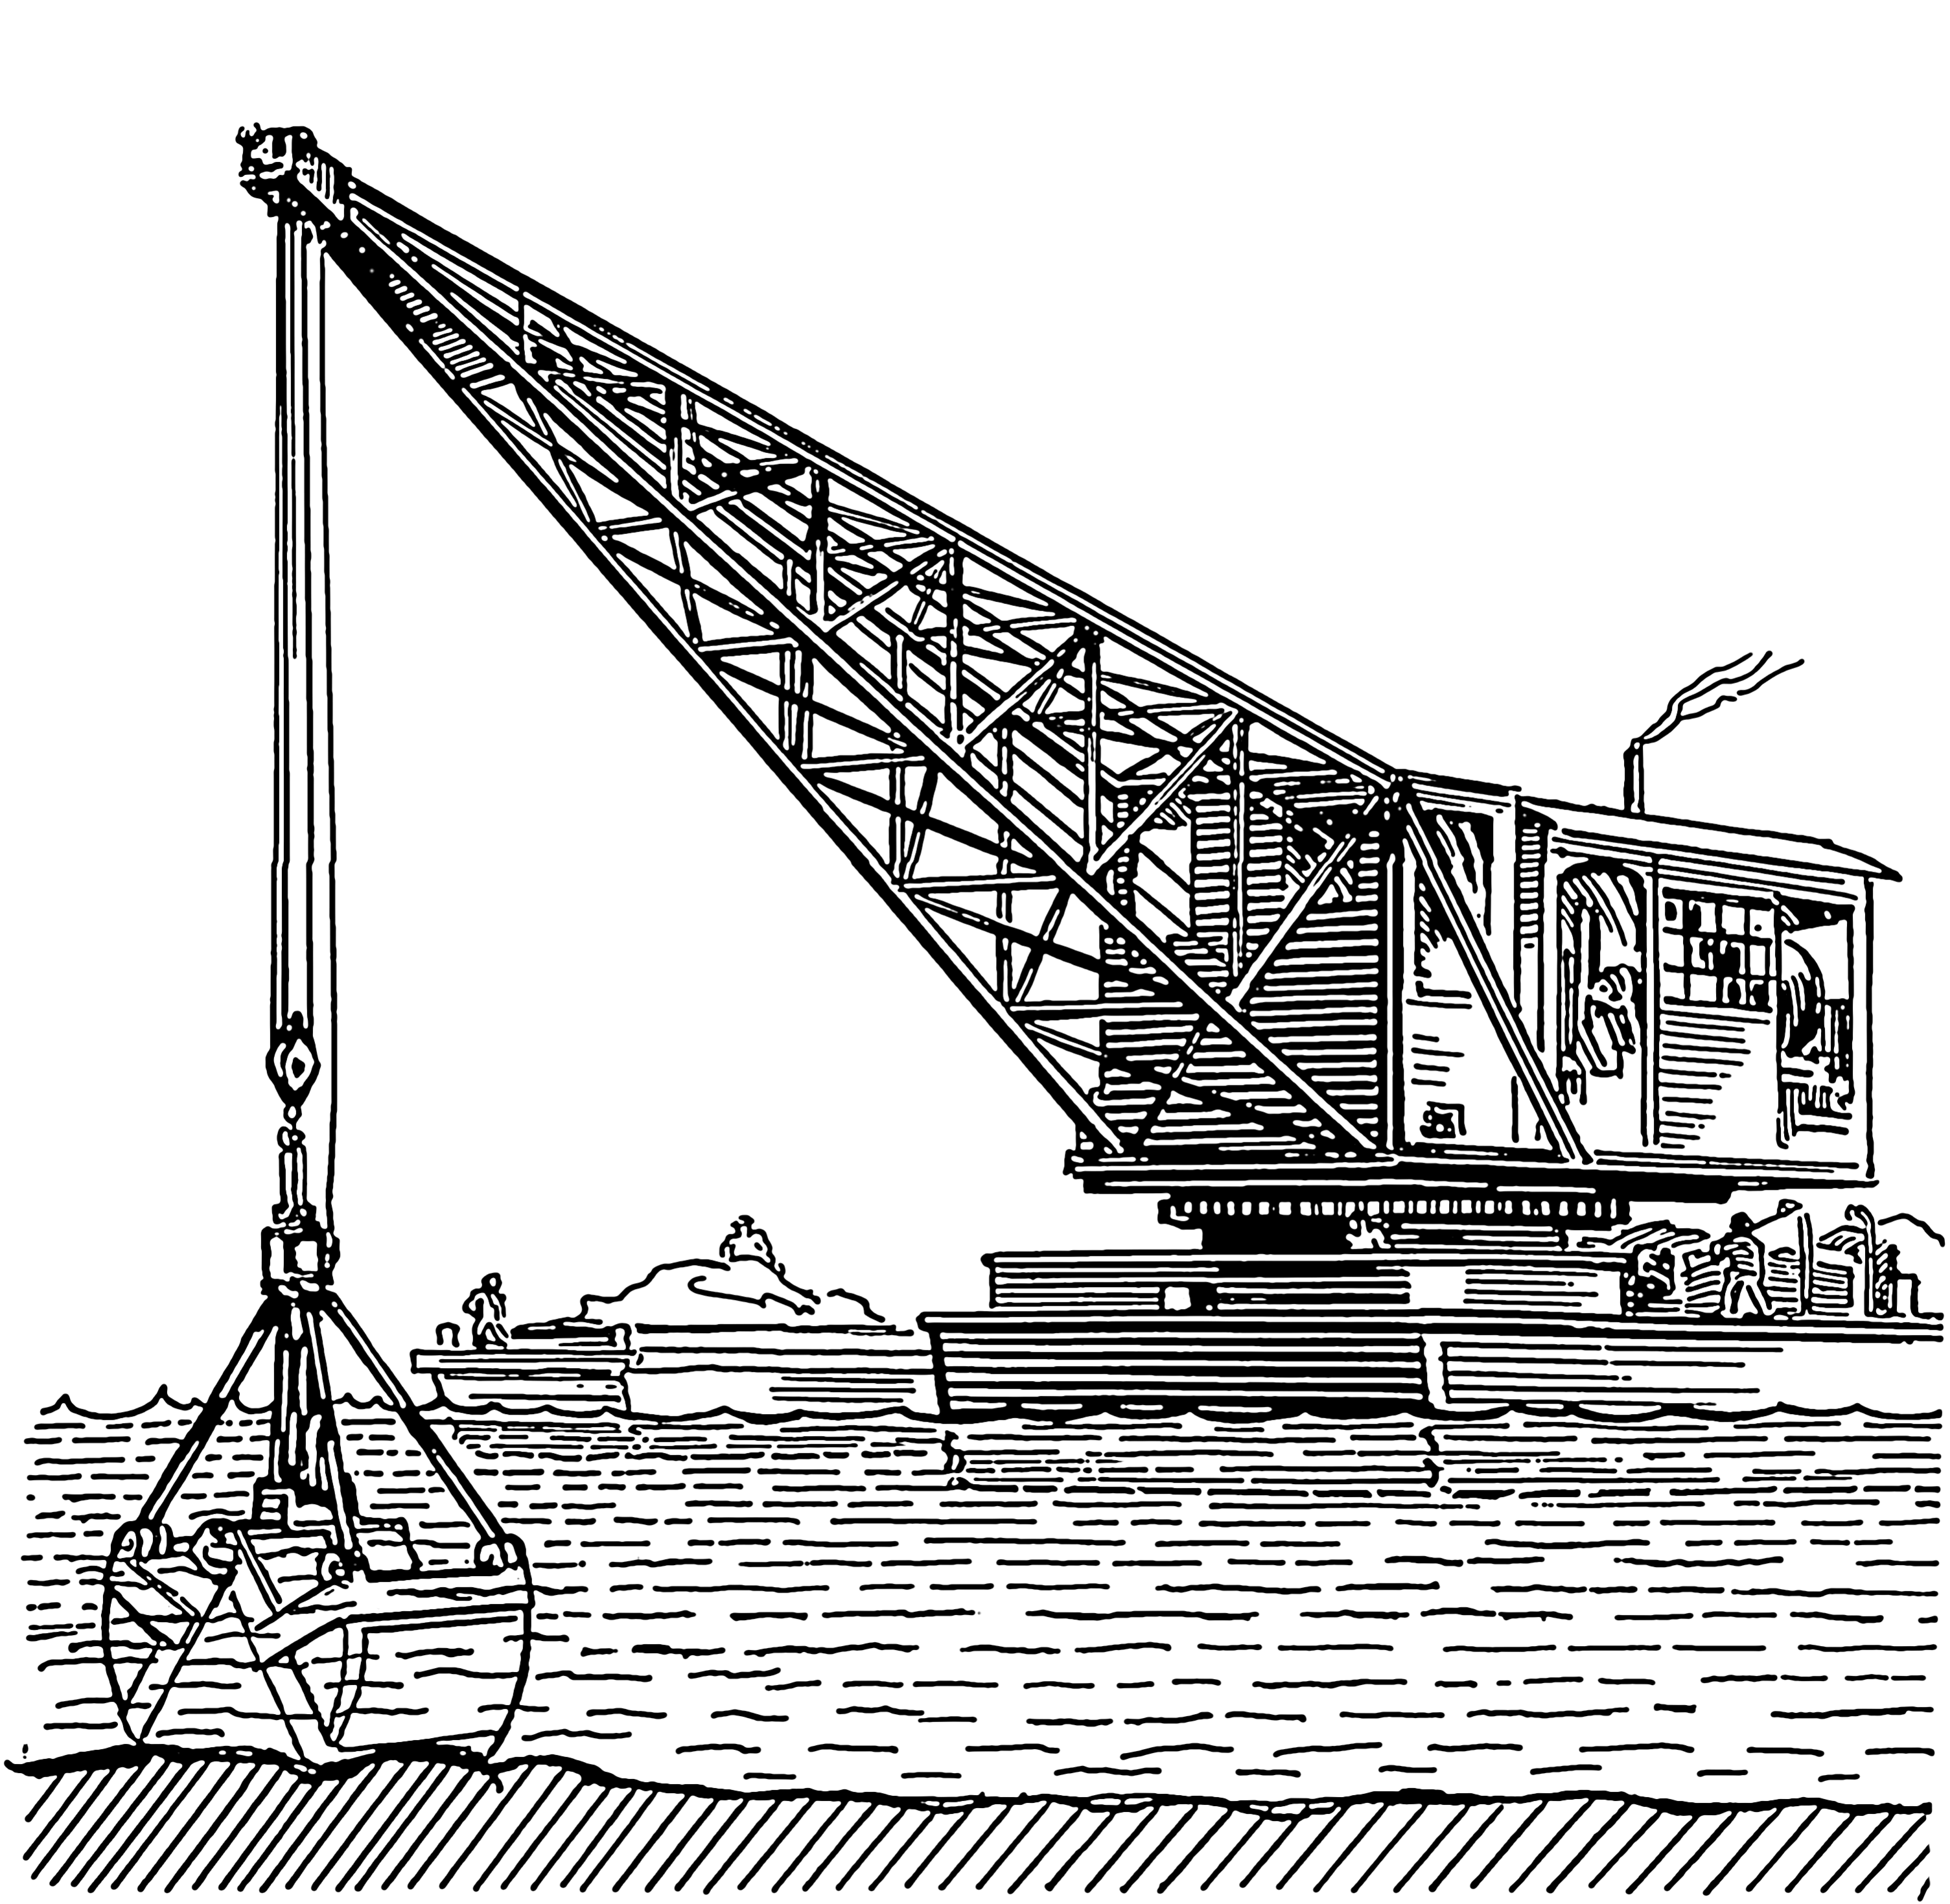 Dredging - The complete information and online sale with